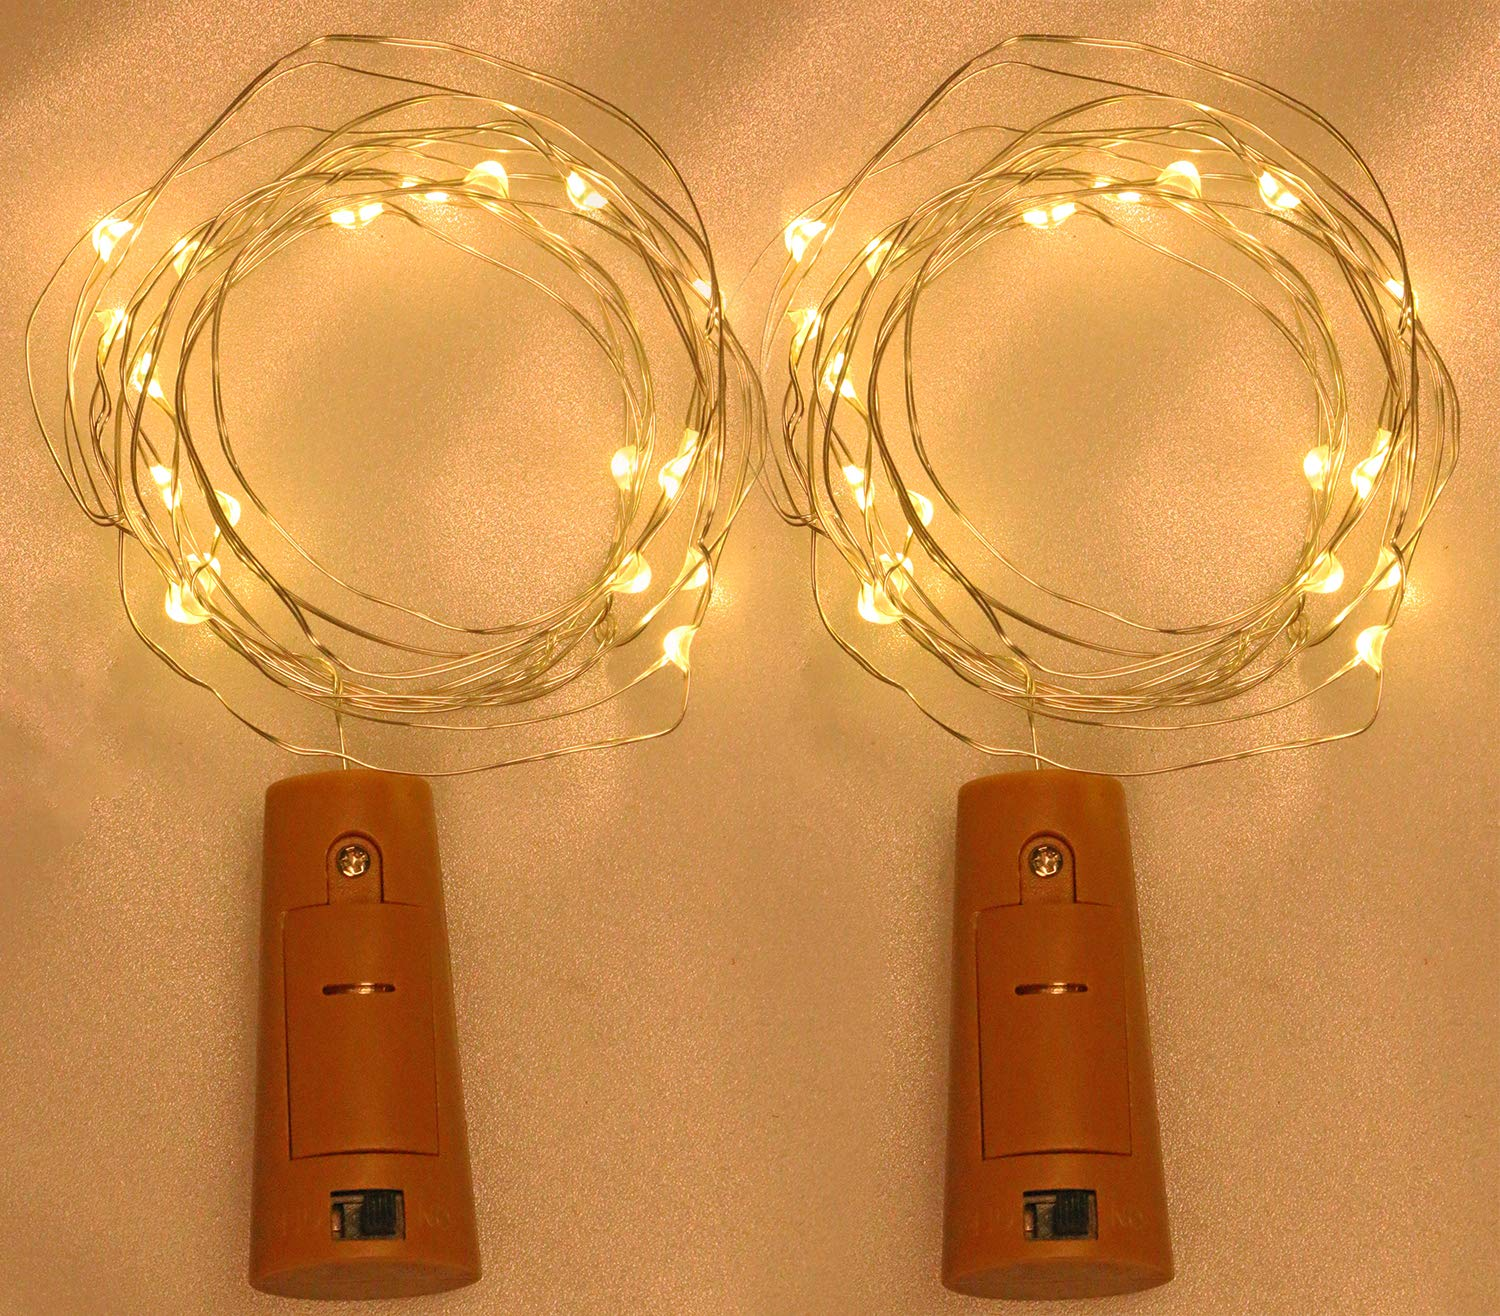 Party Christmas Bar Jar Decoration,2PCS Mini Skater 20LED Small Wine Bottle String Light Battery Powered Copper Wire Cork Shape Fairy Lights with Screwdriver for Night Light DIY Warm White